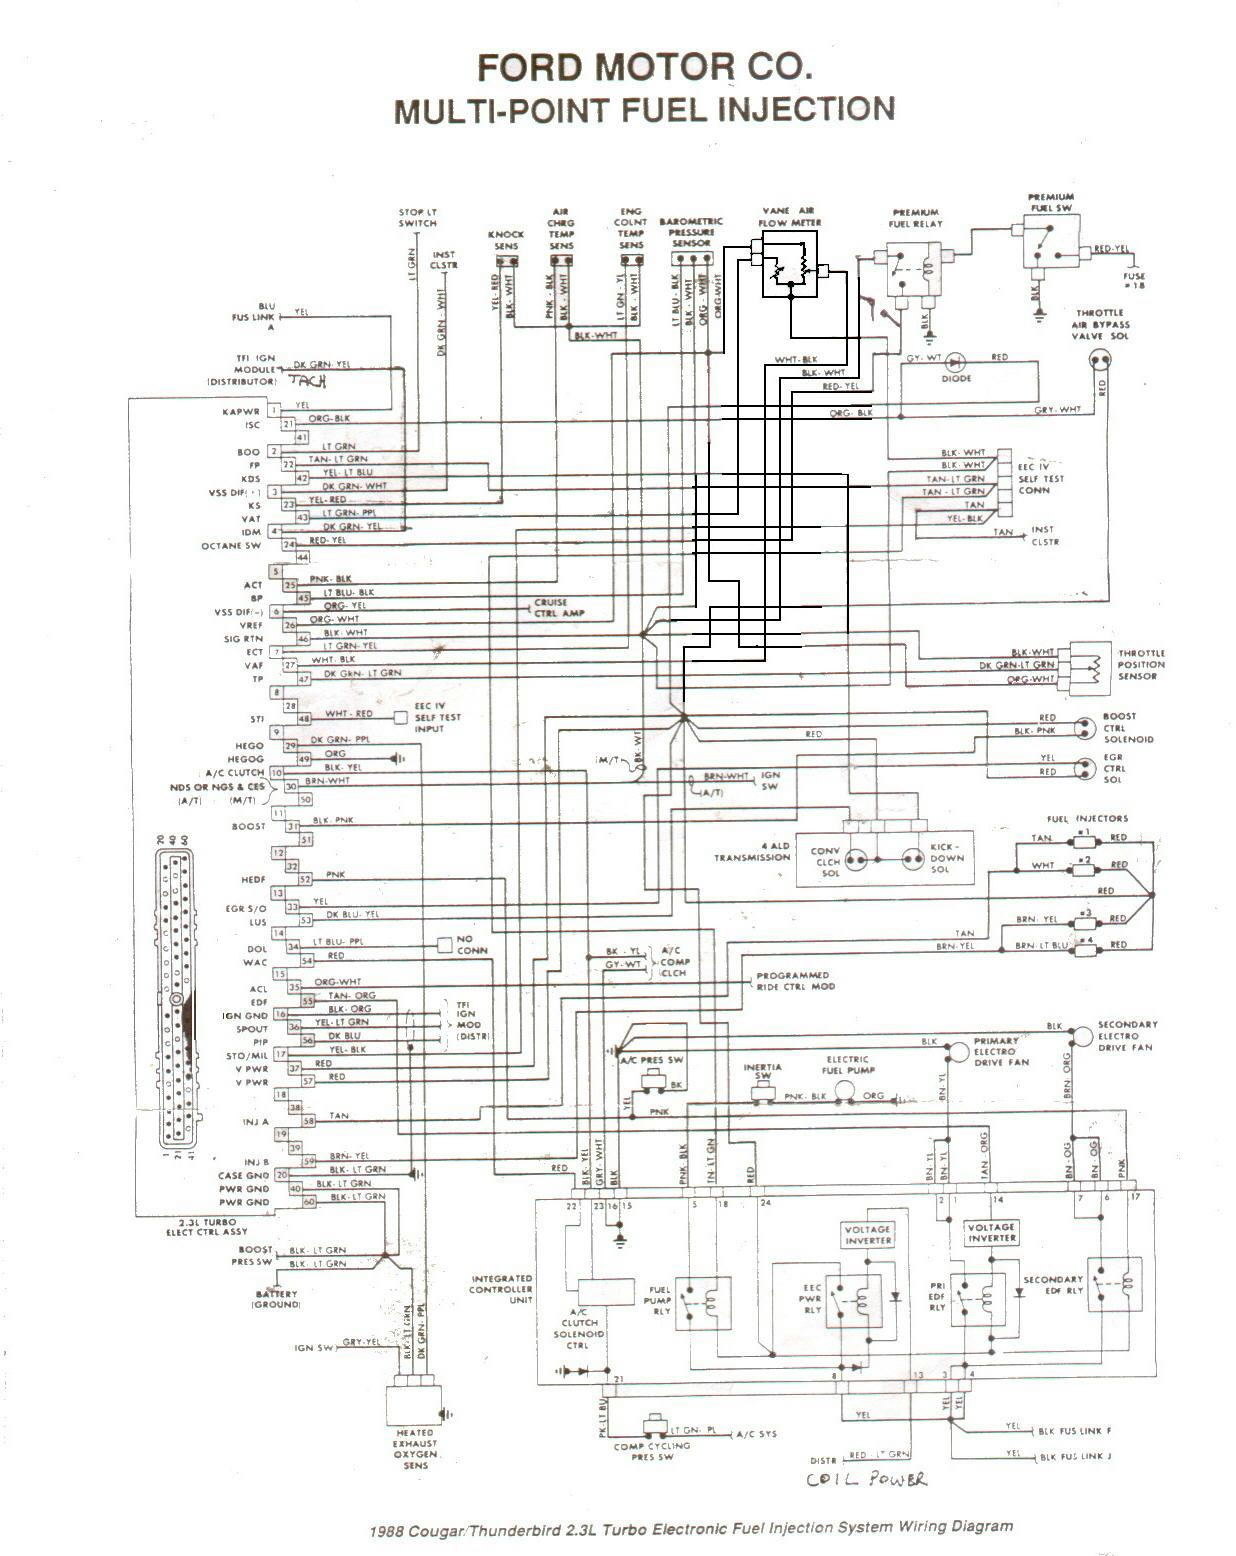 1987-1988 thunderbrid turbo coupe wiring diagram